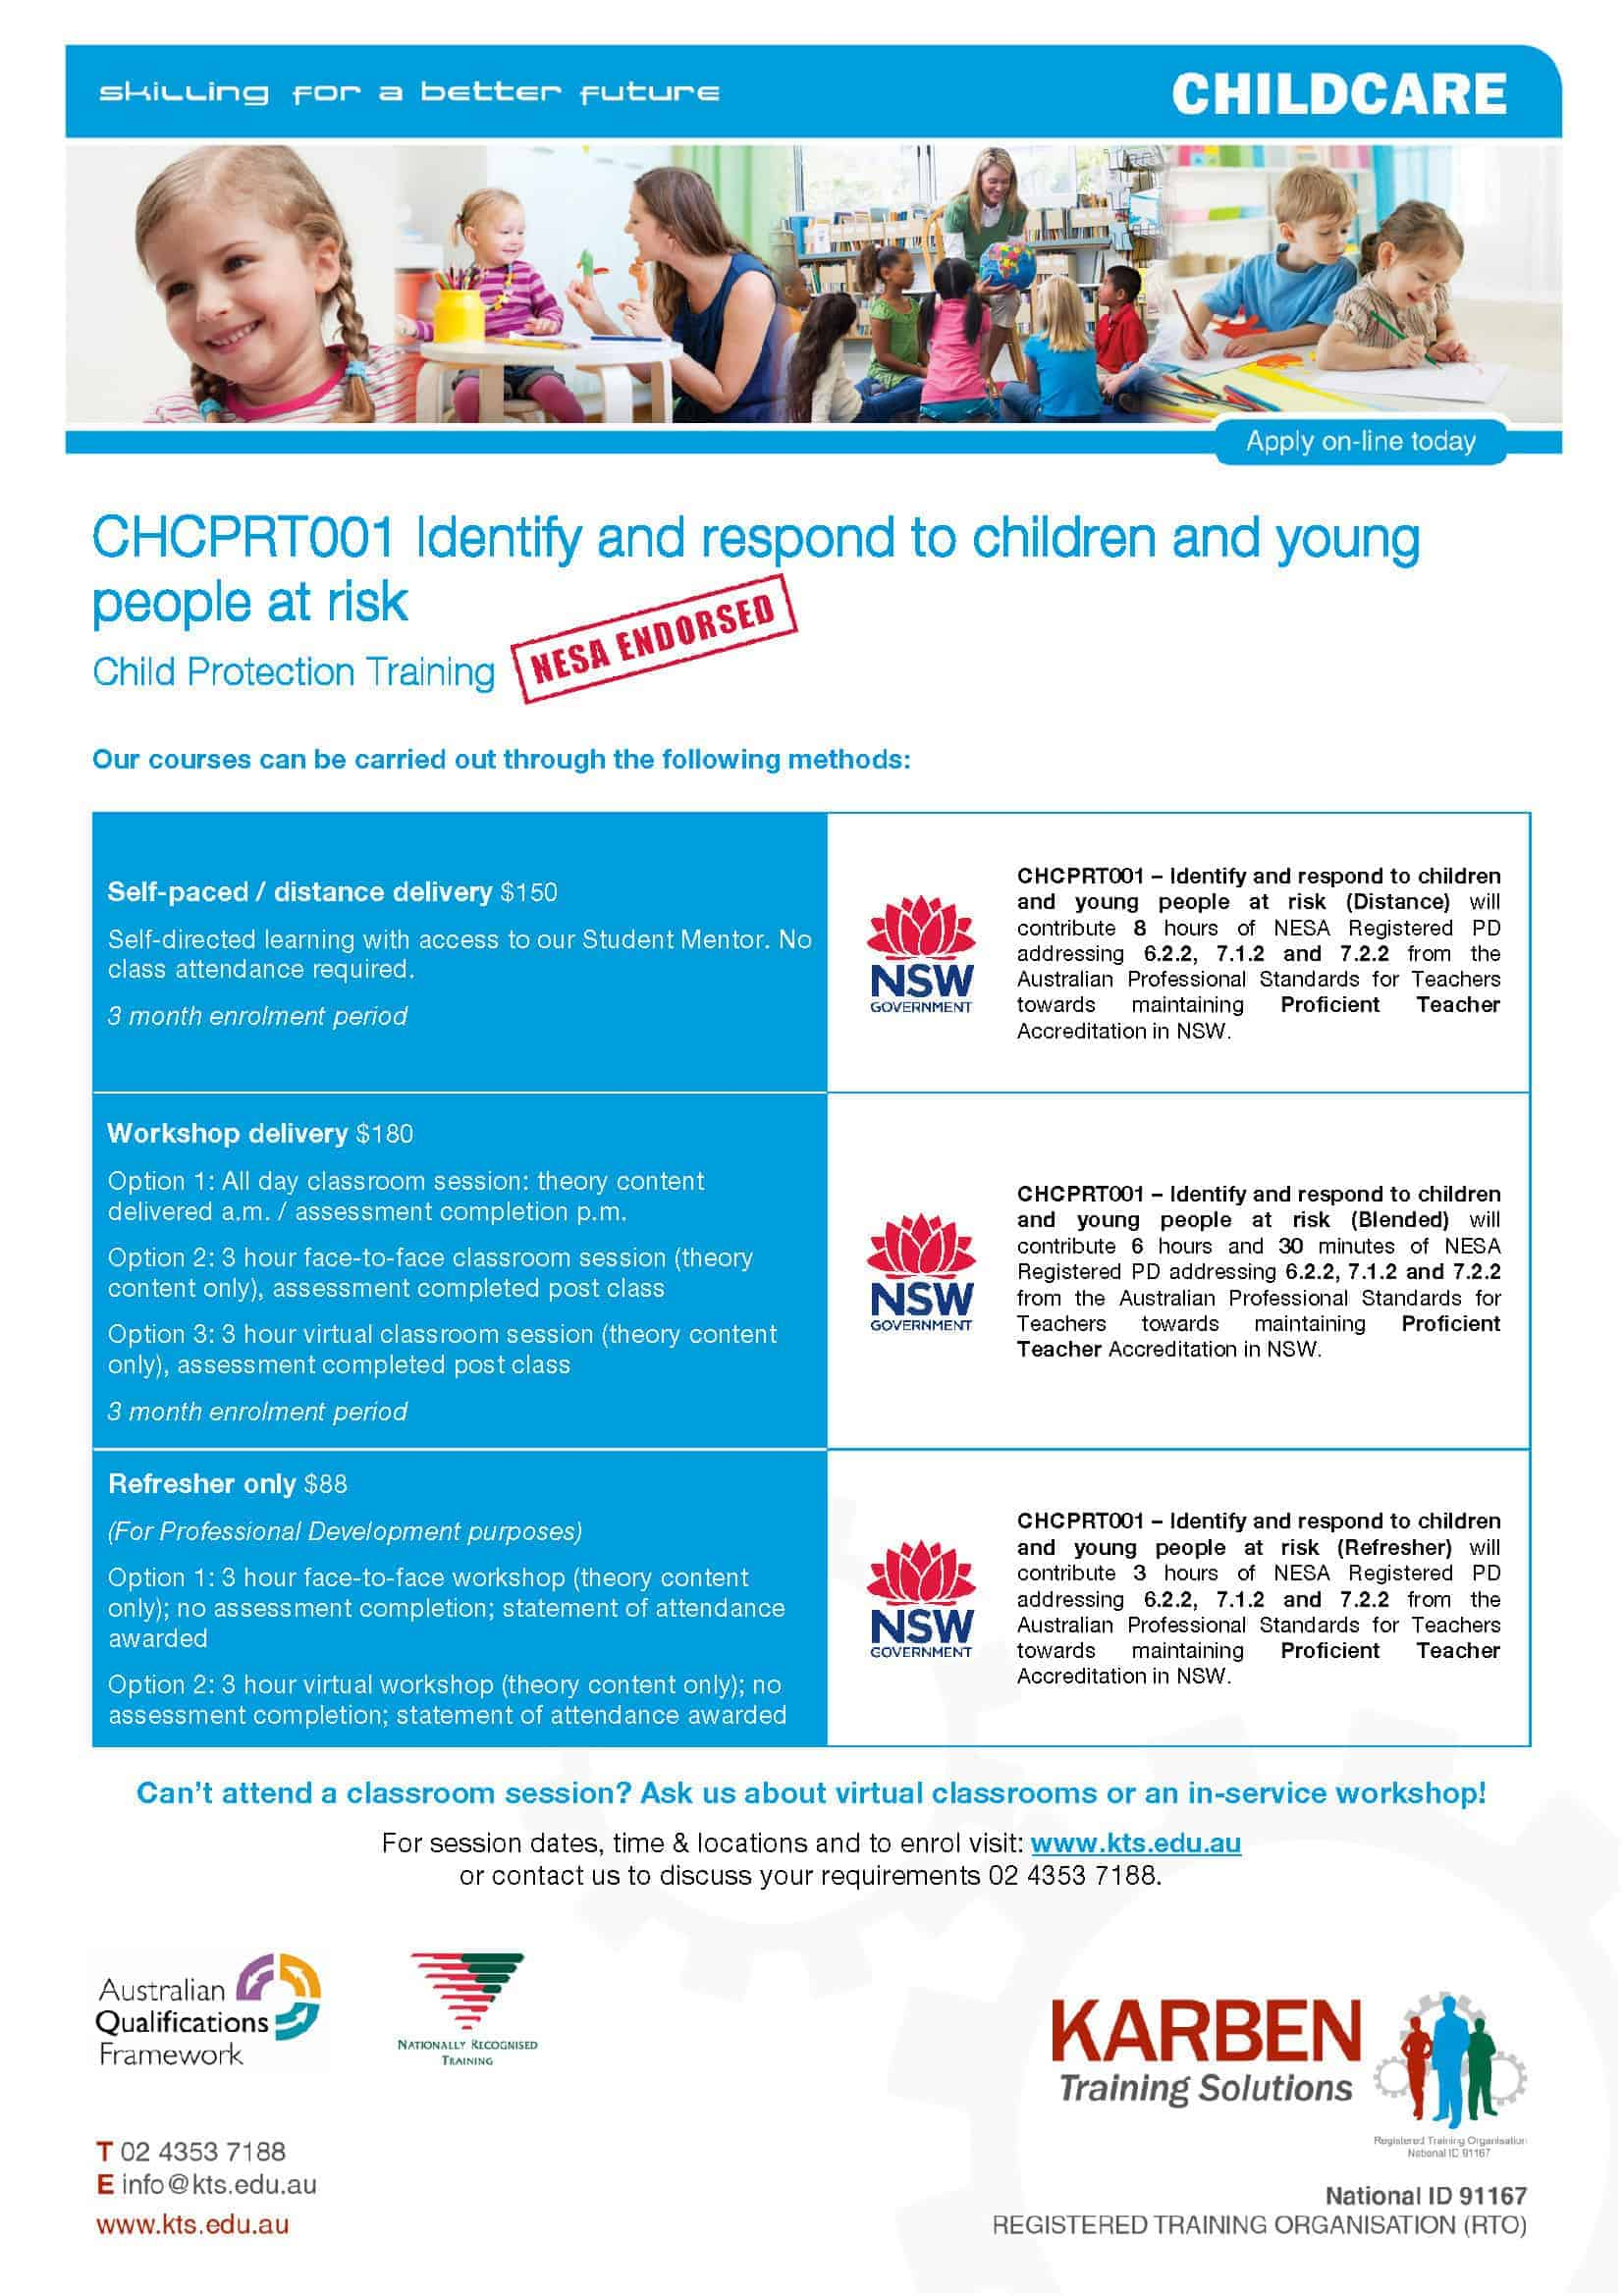 CHCPRT001 Identify and respond to children fact sheet_Page_2